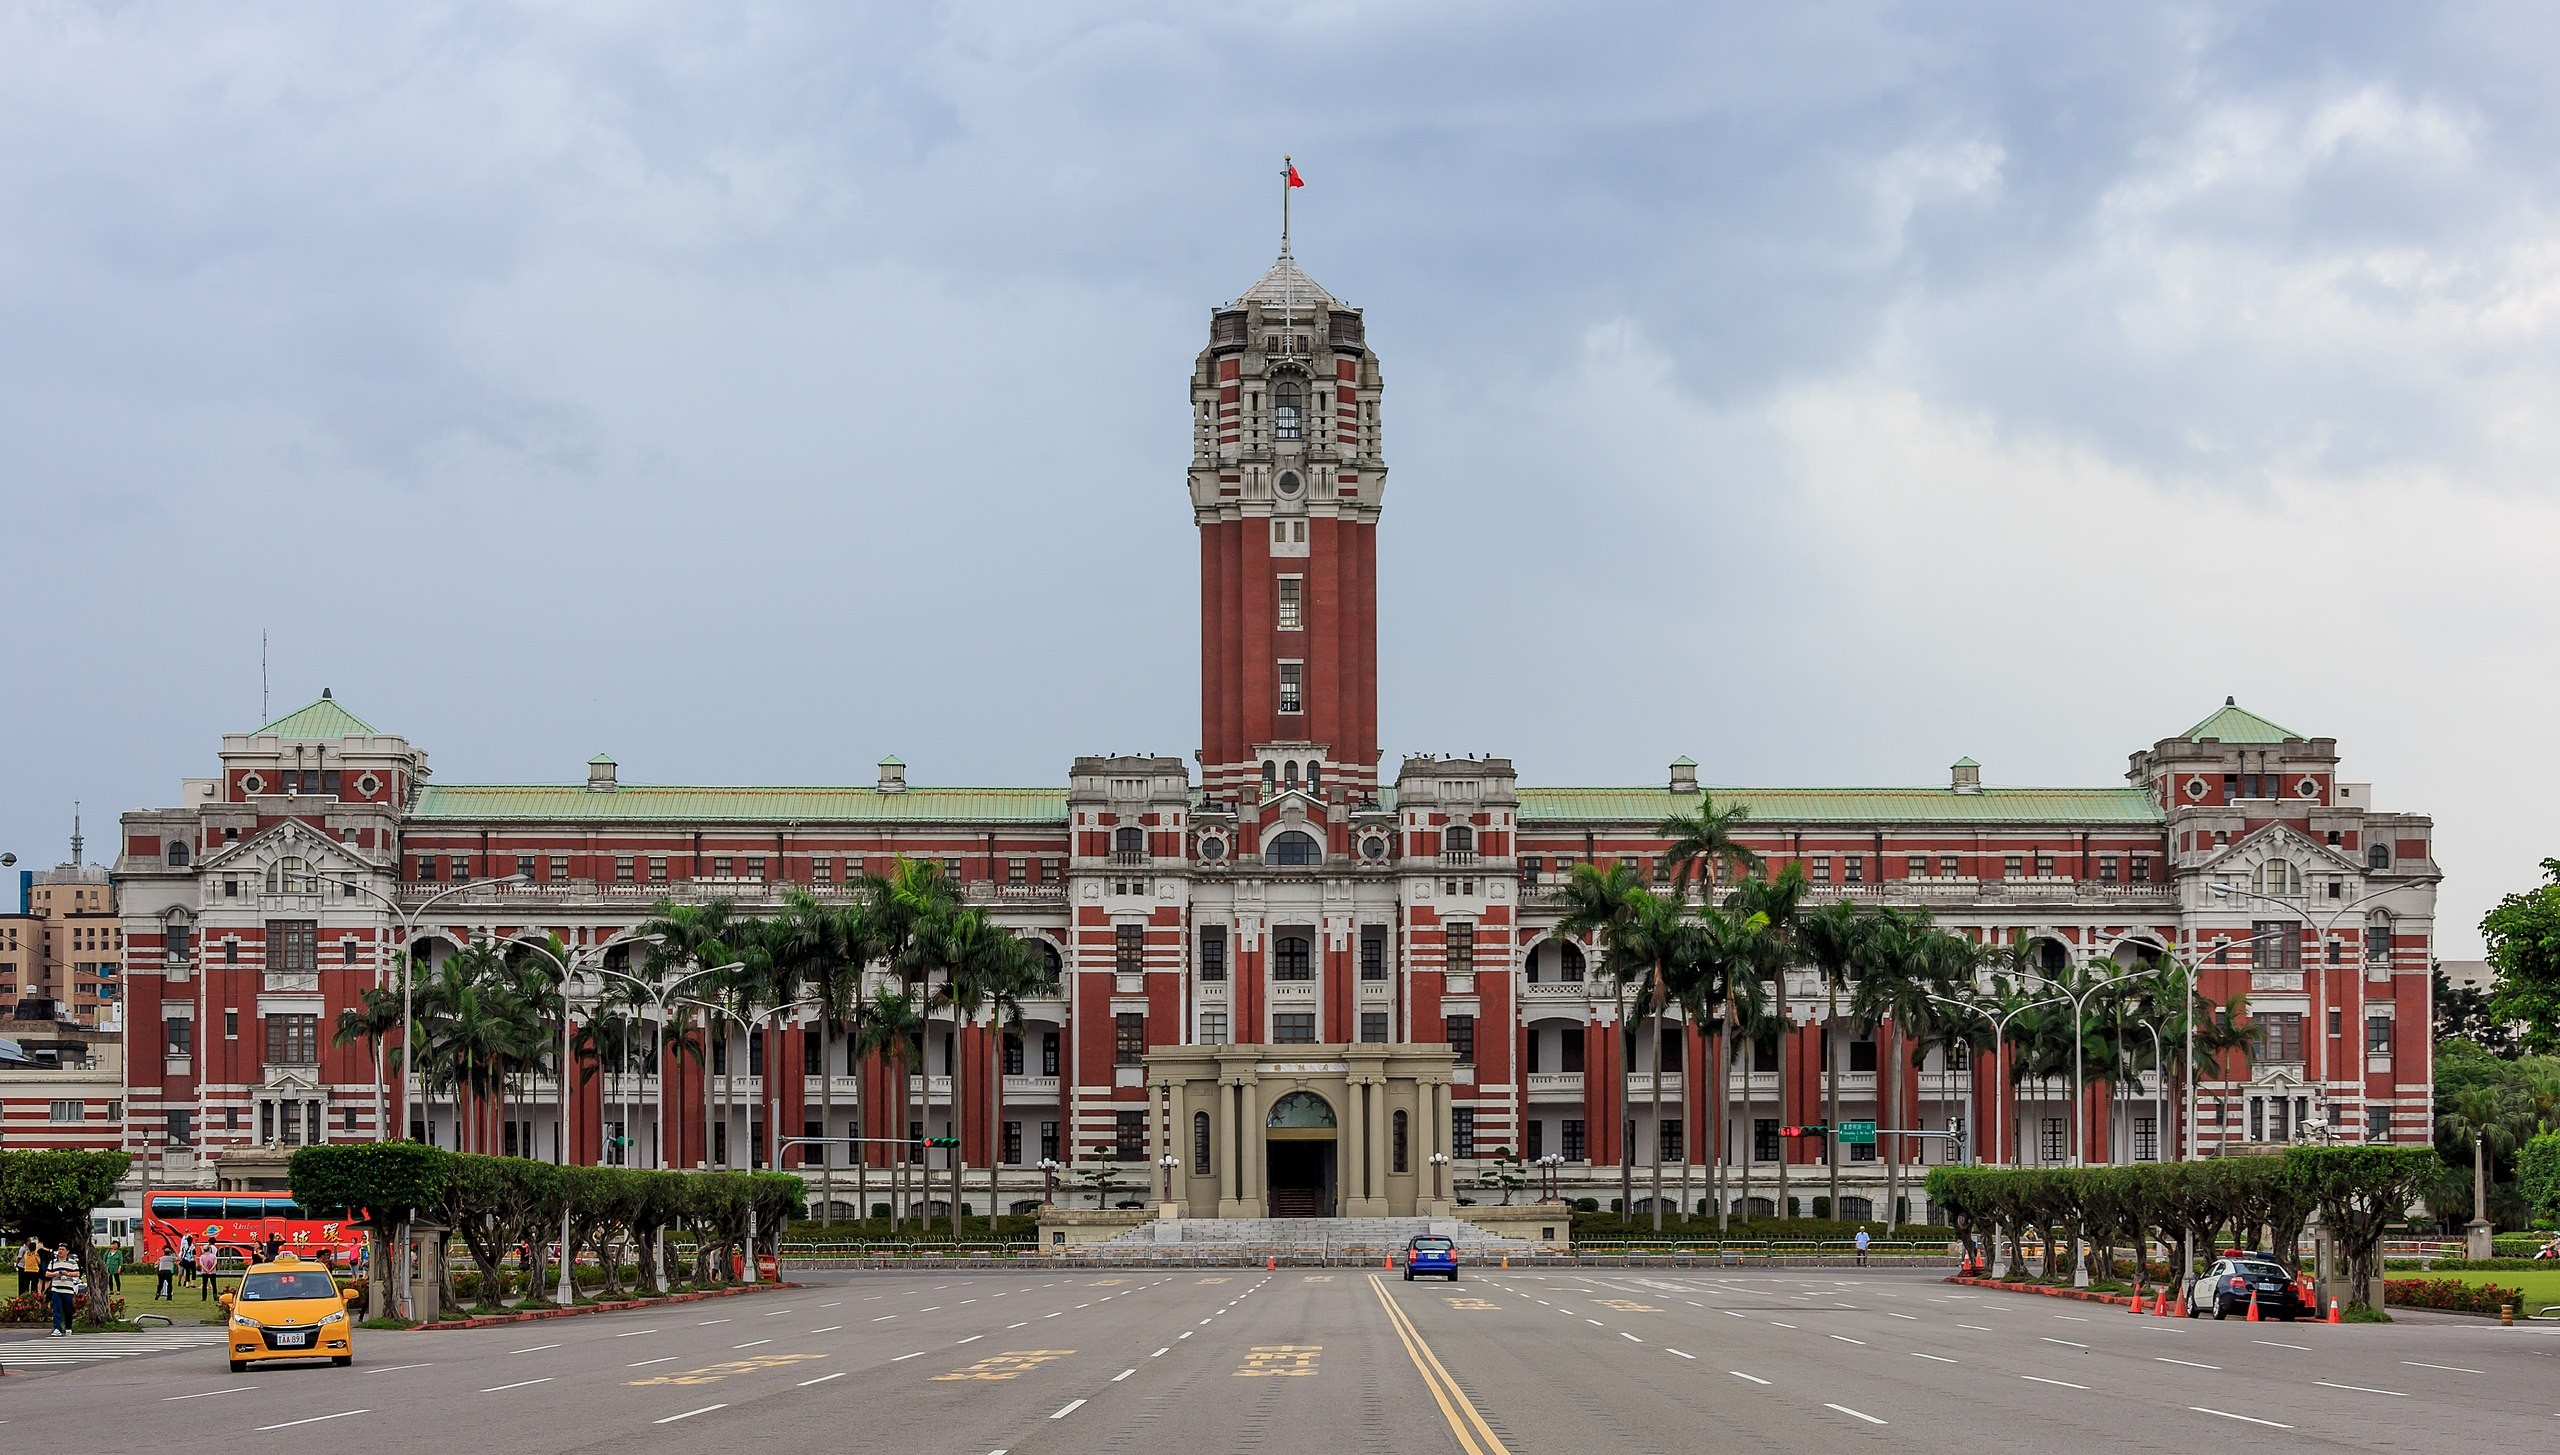 The Presidential Office Building, Taiwan